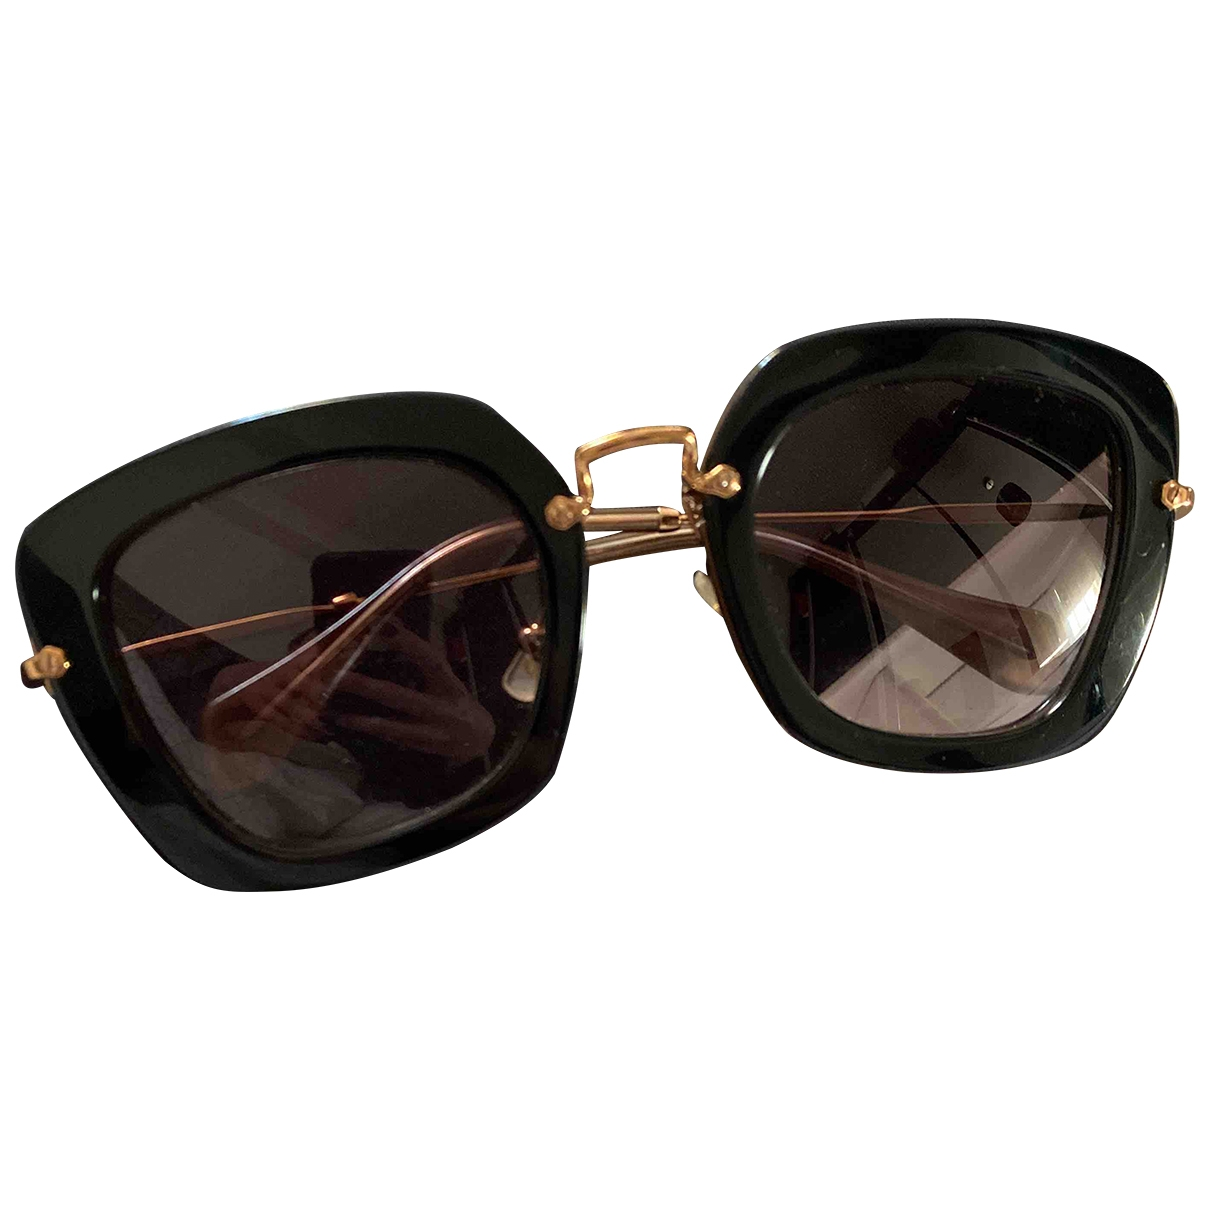 Miu Miu \N Black Sunglasses for Women \N